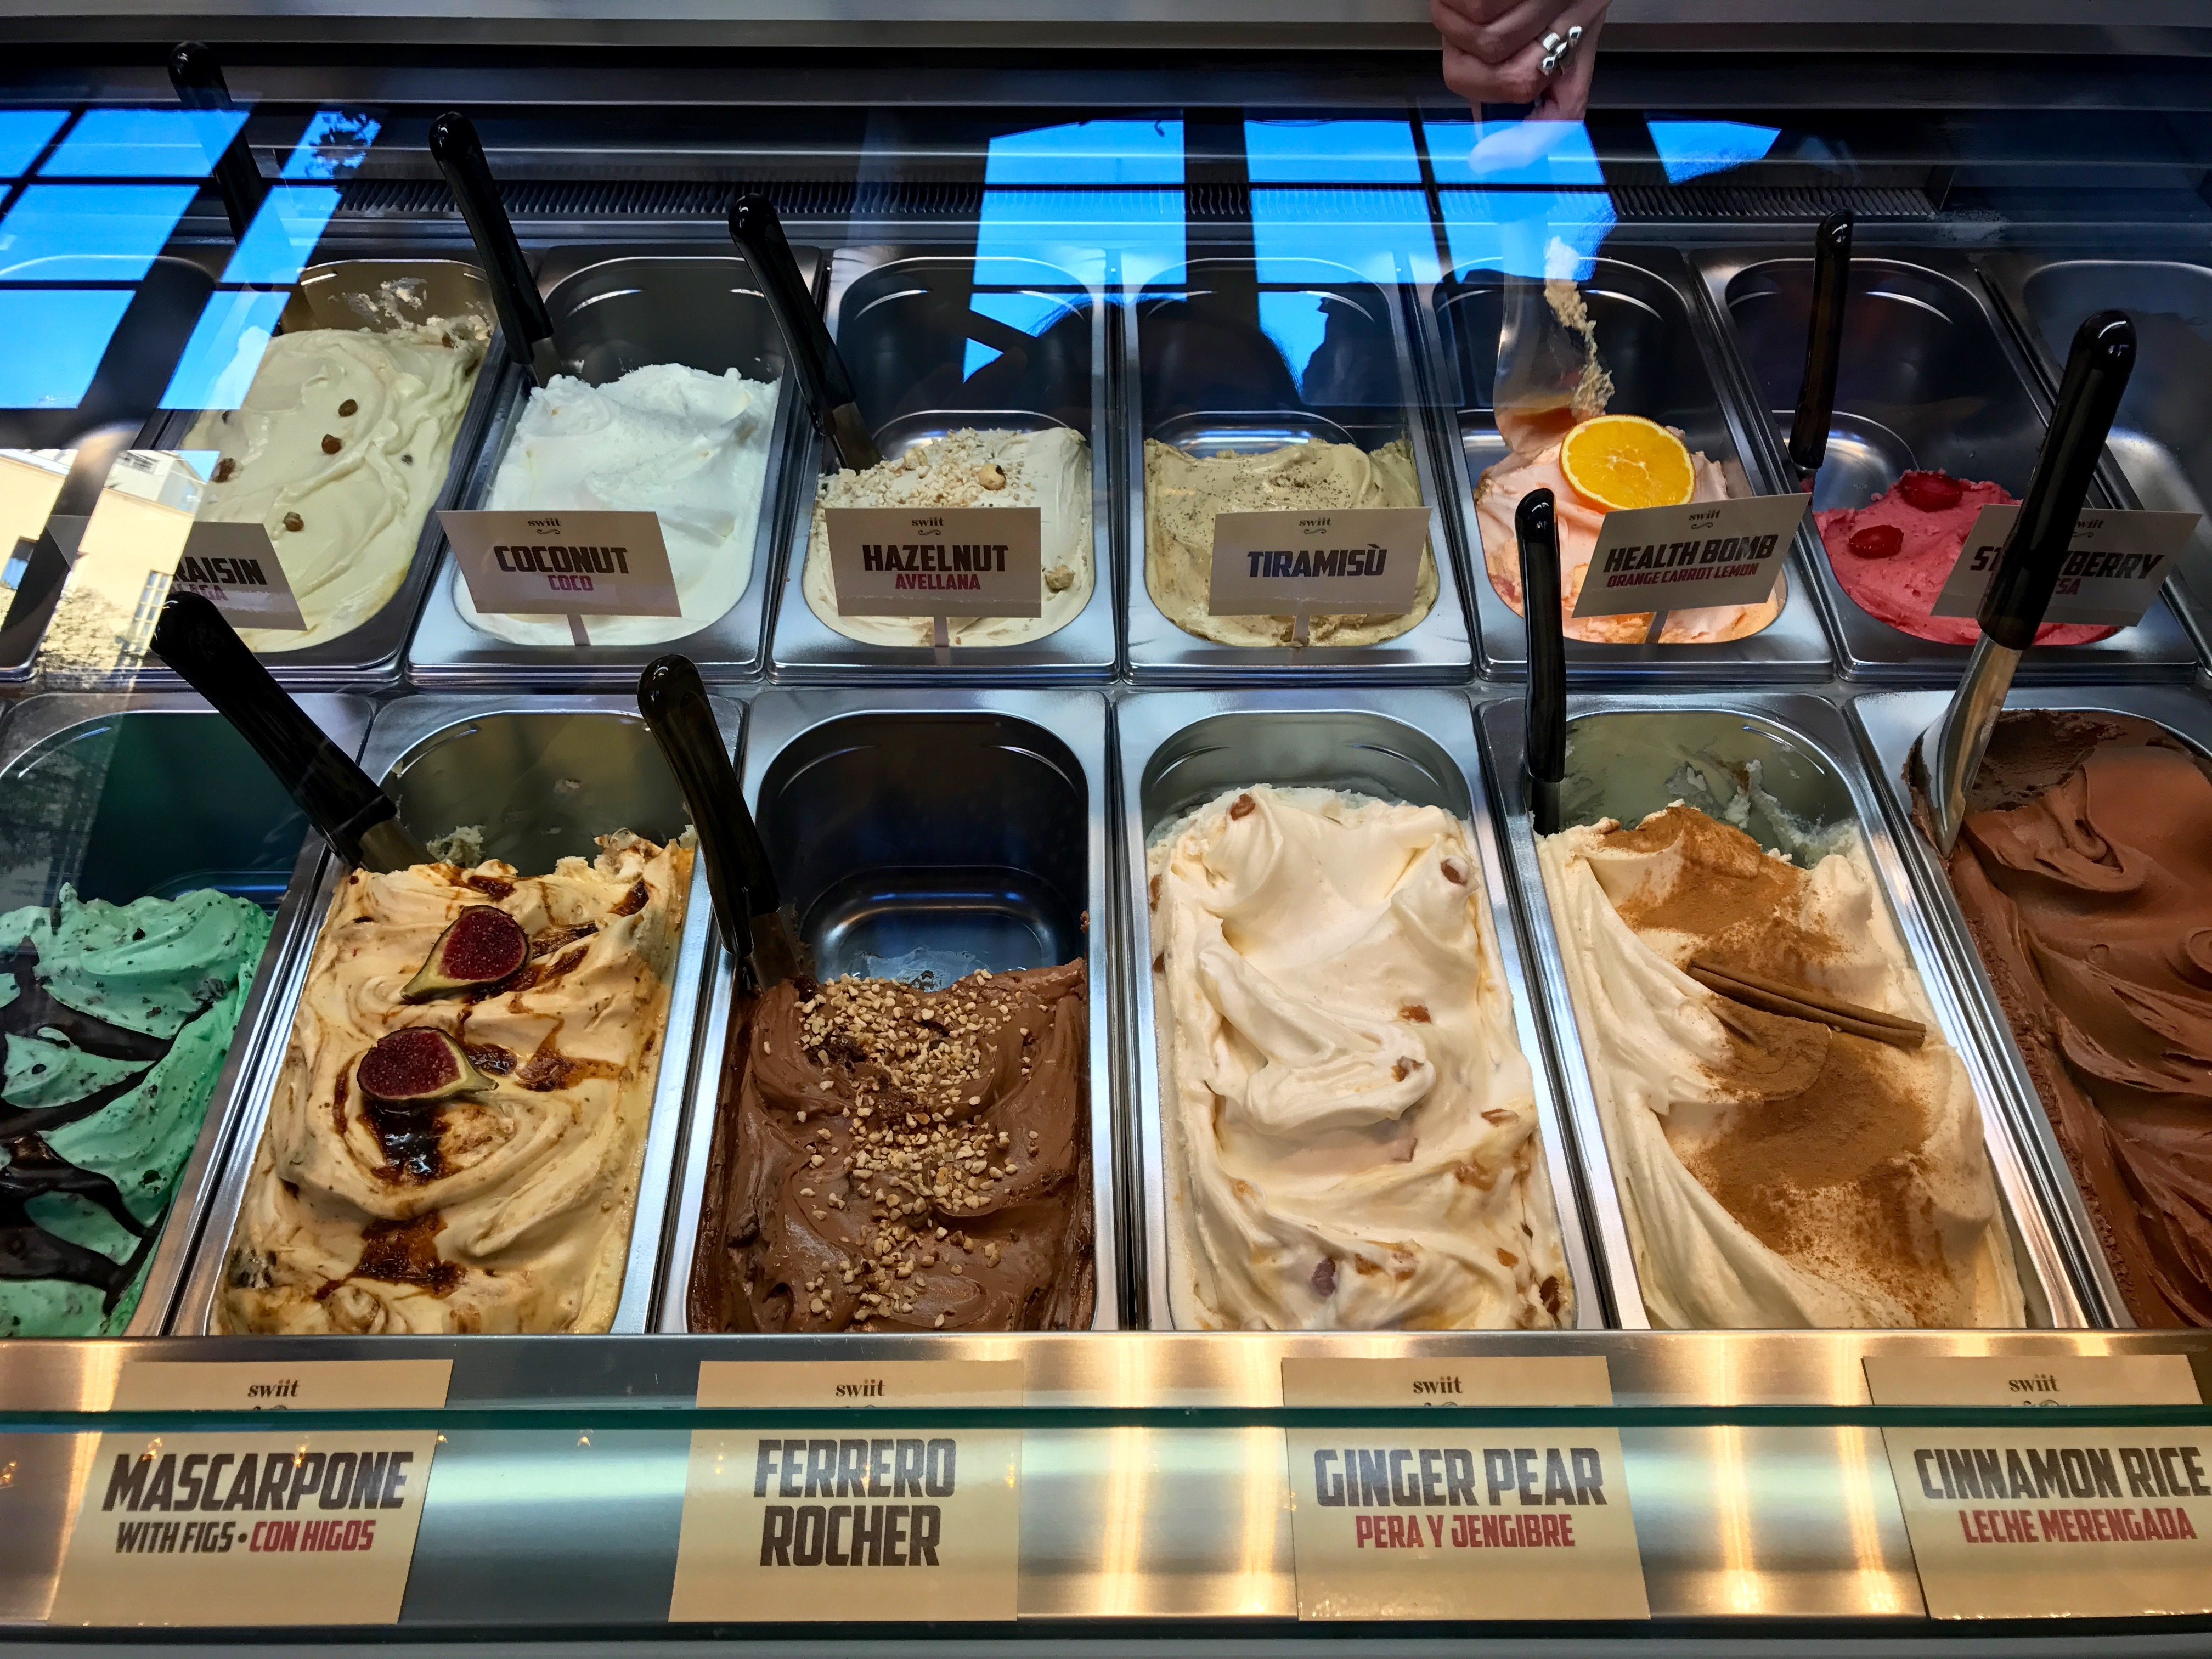 Flavours at Swiit Ice Cream